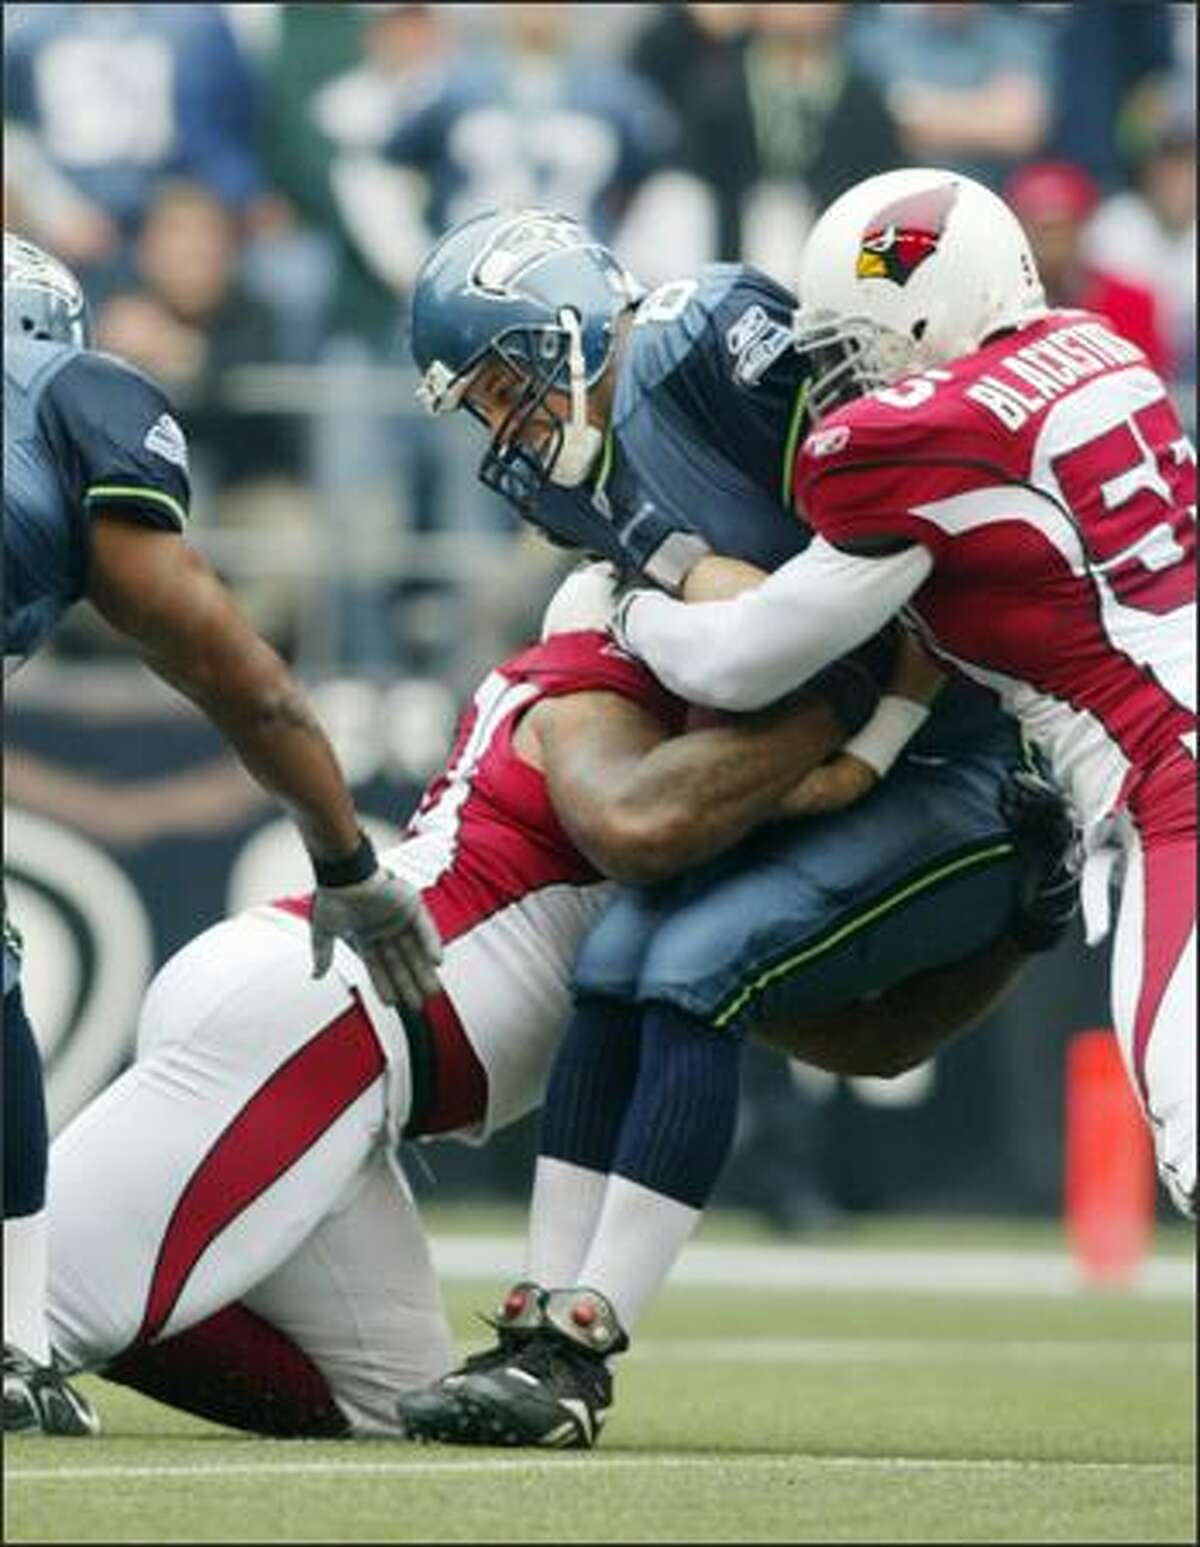 Seahawks quarterback Matt Hasselbeck is sacked for a 10-yard loss by Arizona Cardinals Darnell Dockett, left, during Seattle's first play from scrimmage in the 1st quarter. On right is Cardinals' Darryl Blackstock.